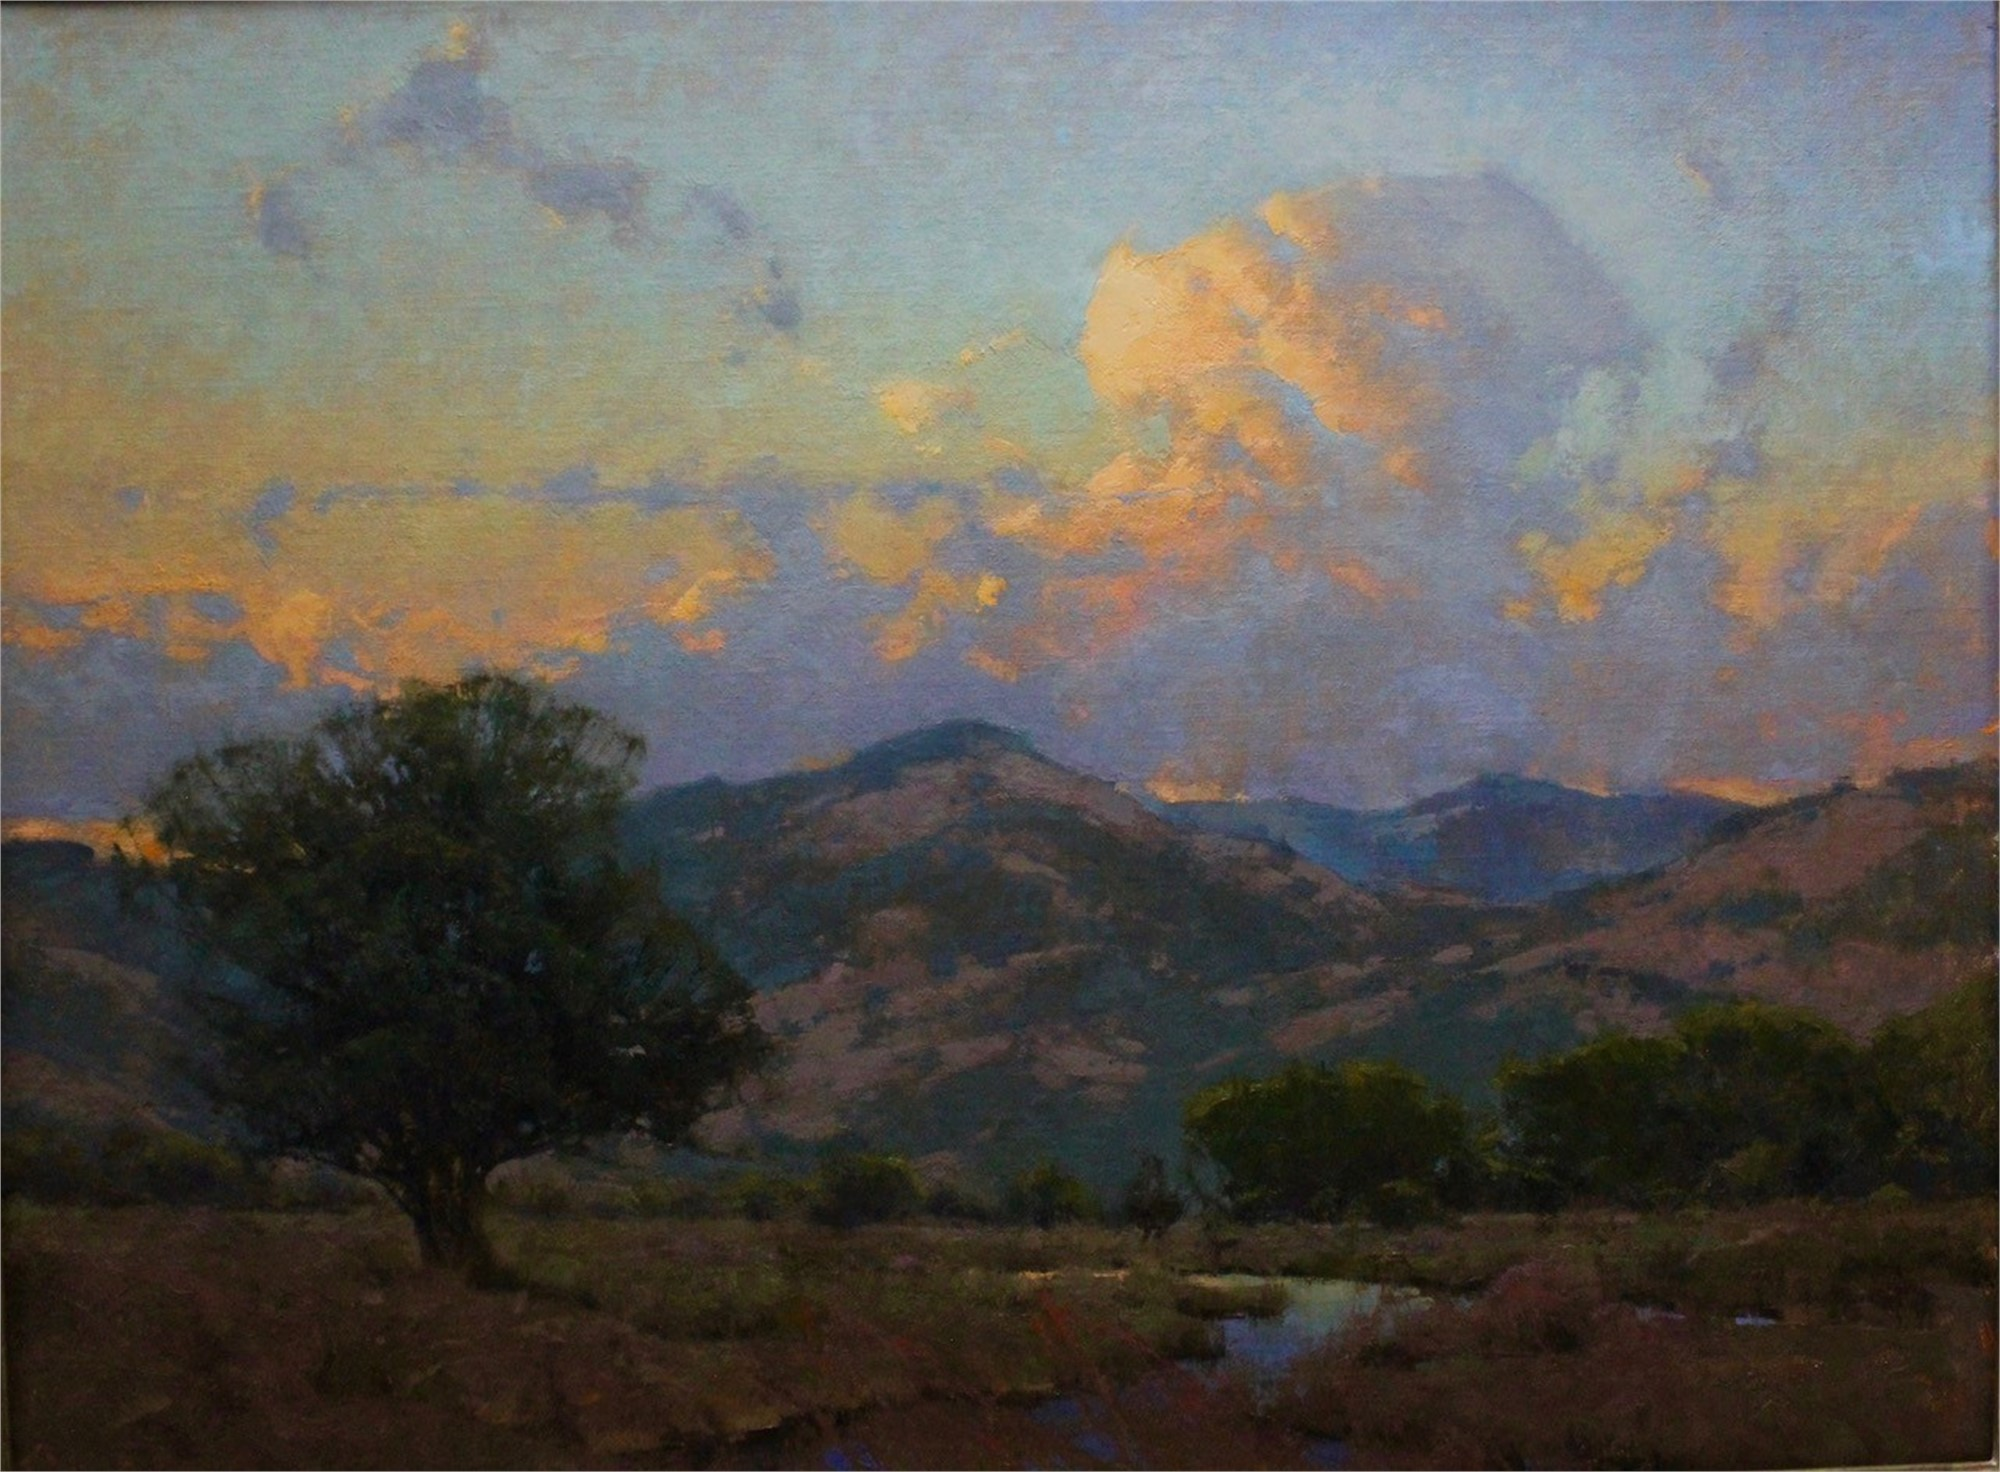 Summer Sky at Evening by Michael J Lynch